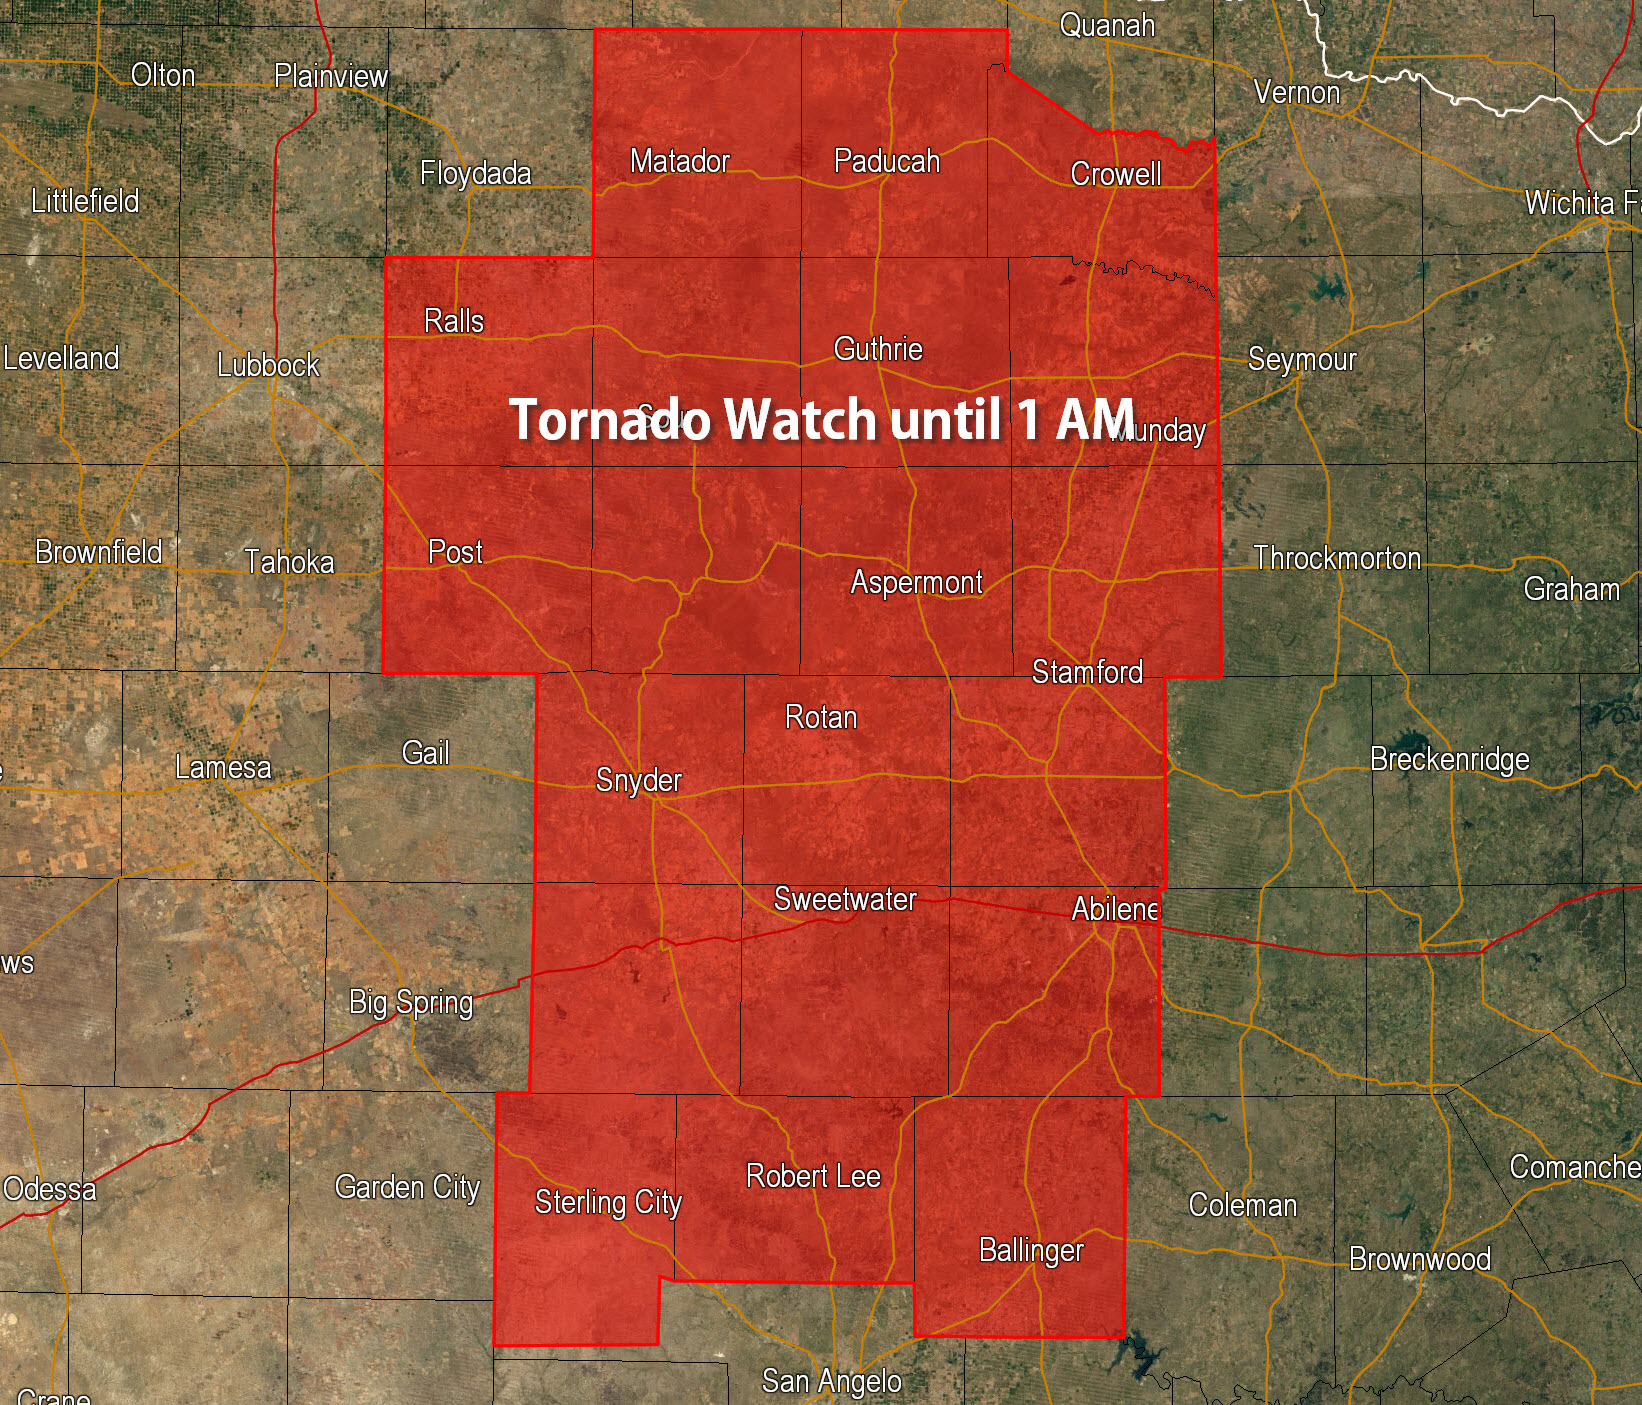 Tornado Watch until 1 AM for West Central Texas • Texas Storm Chasers